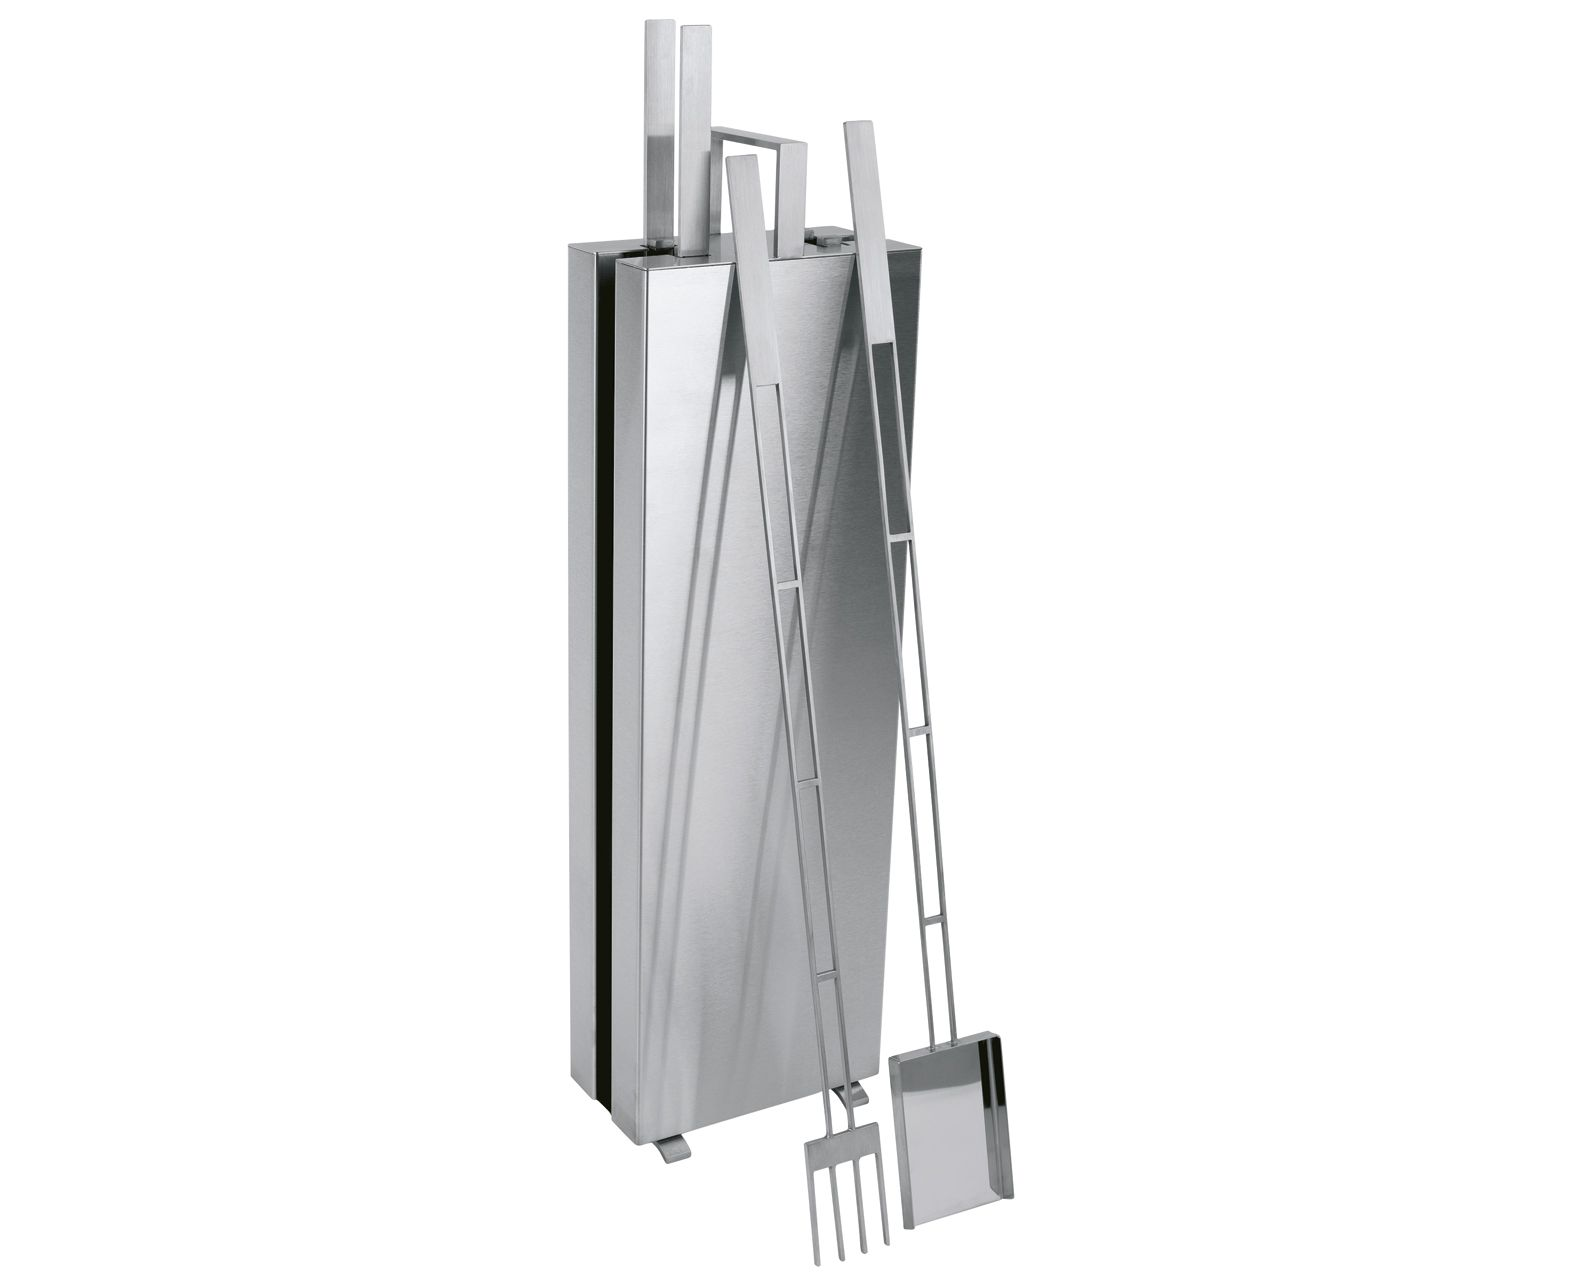 finnish design fireplace set made from stainless steel buy at www